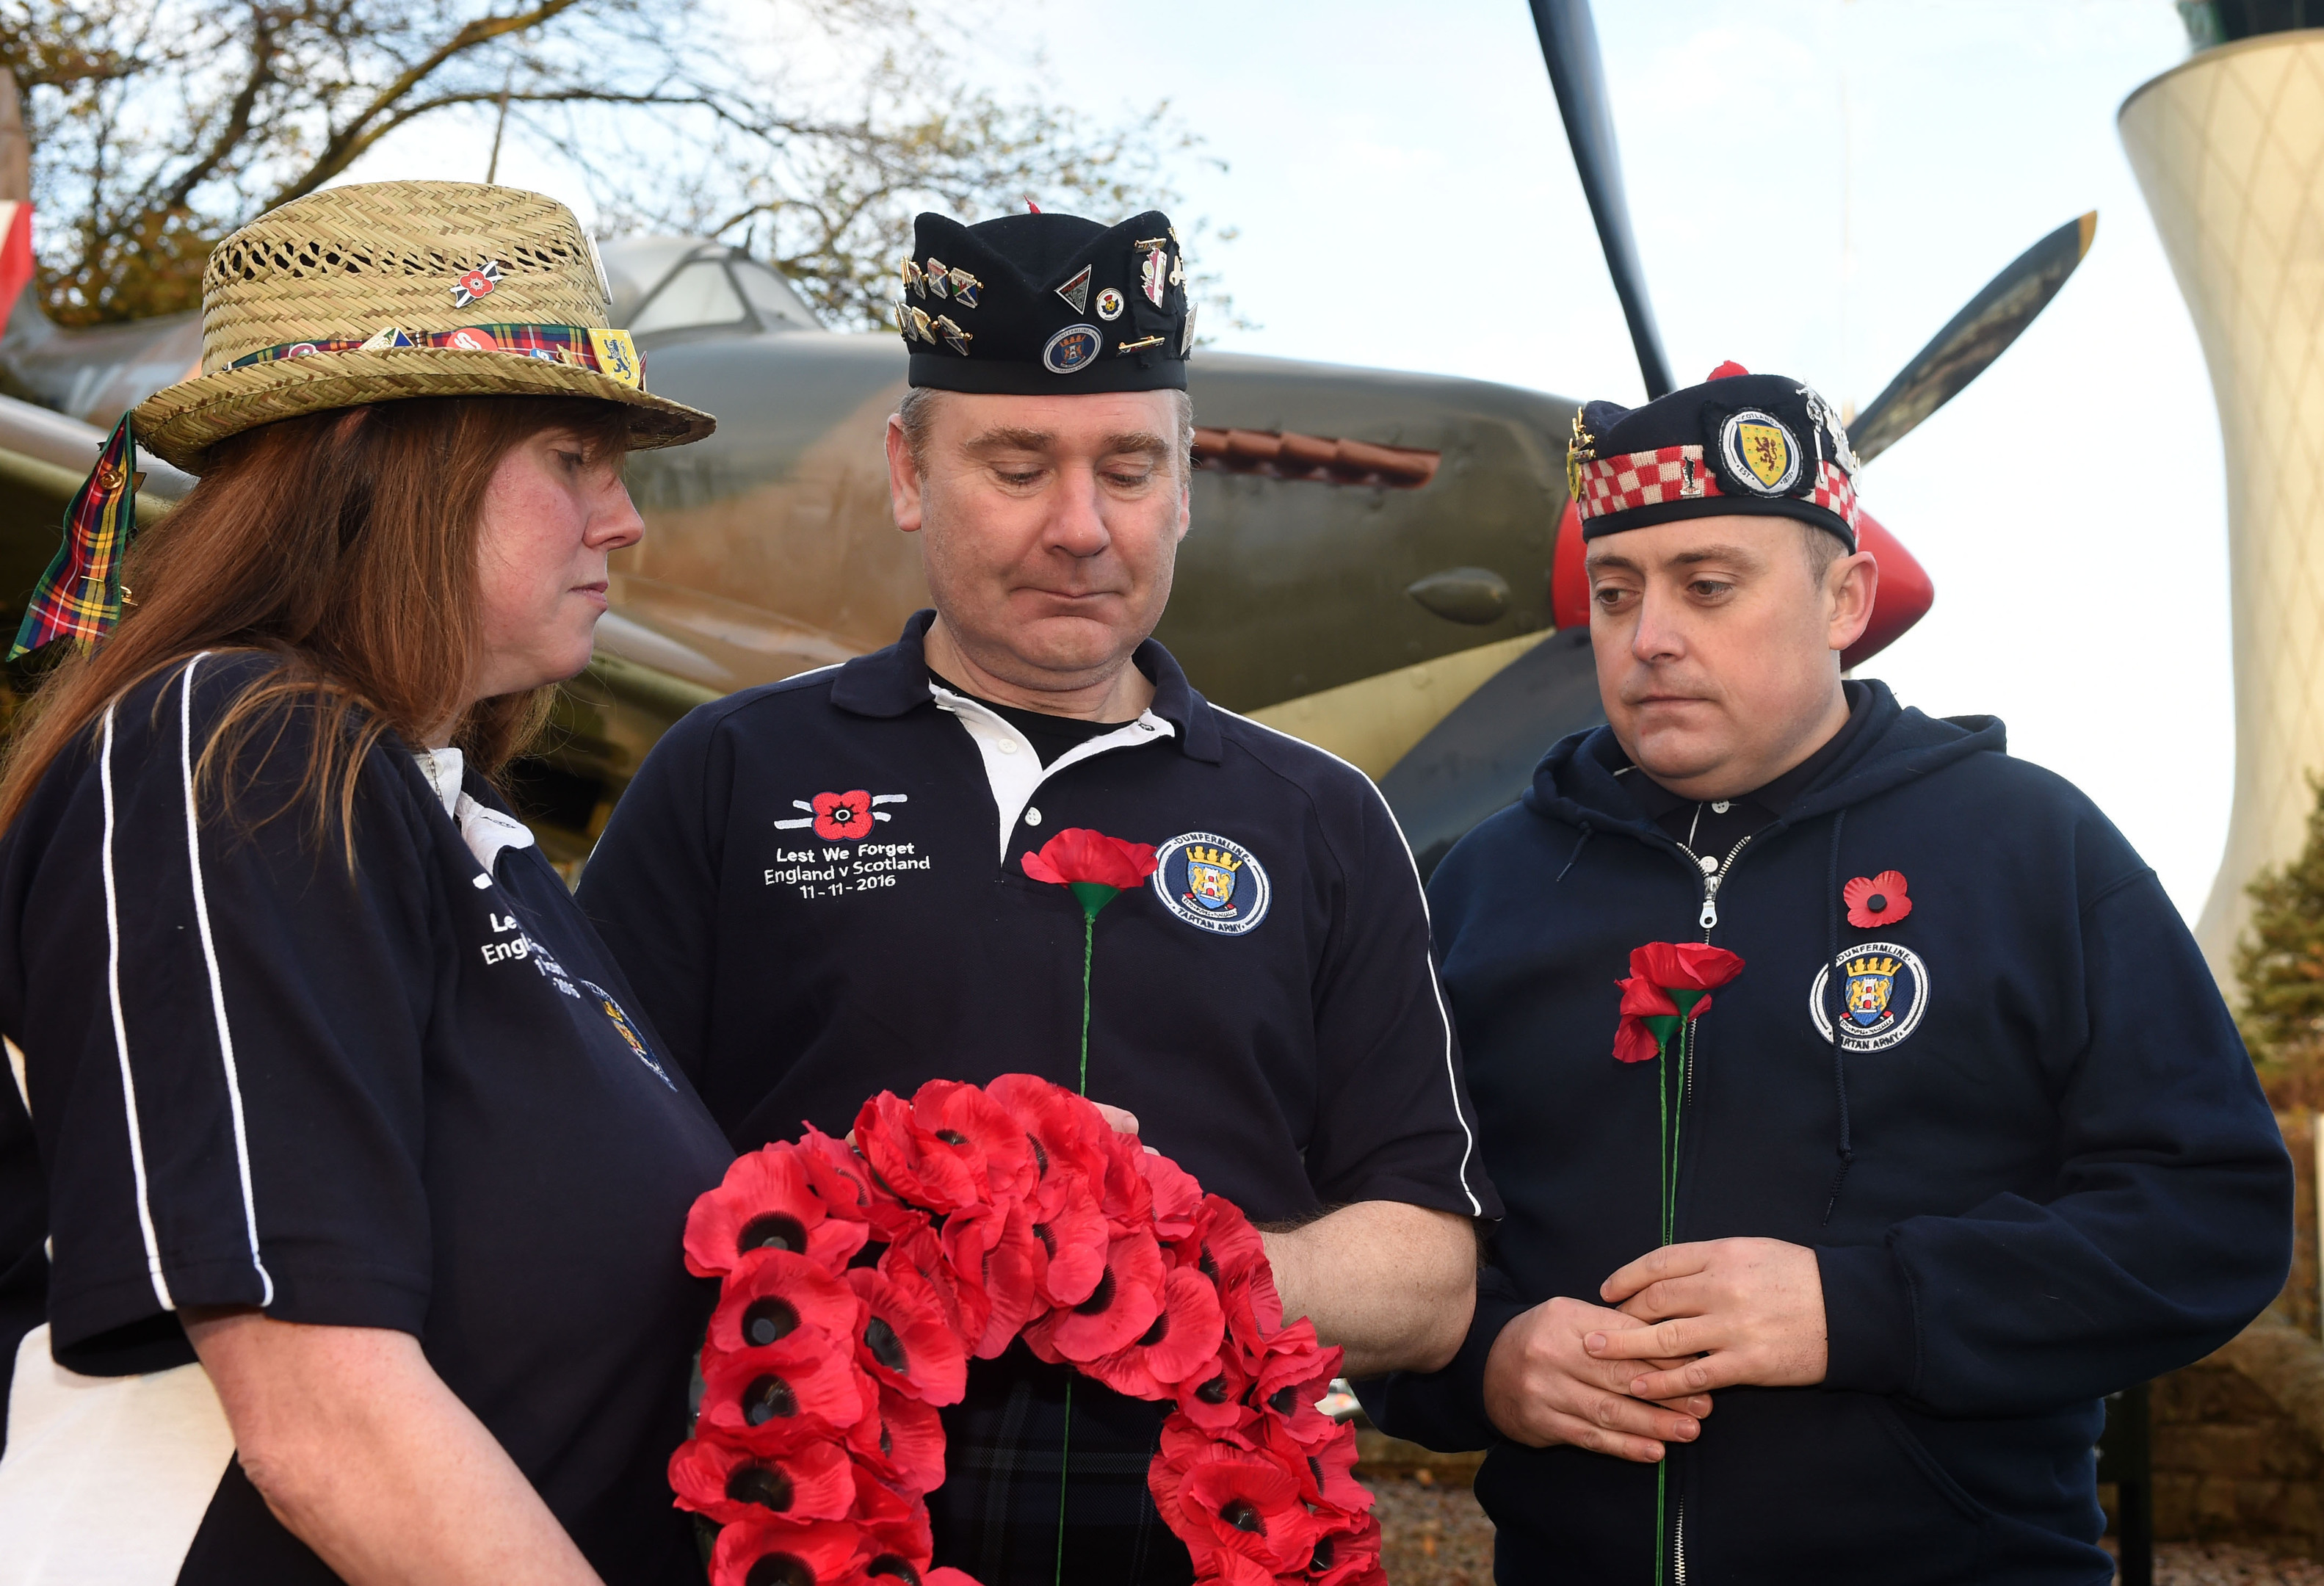 Members of the Tartan Army Jim and Audrey Ford, accompanied by Steven Avril pay their respects at the site of a WW 2 Spitfire at Edinburgh Airport.